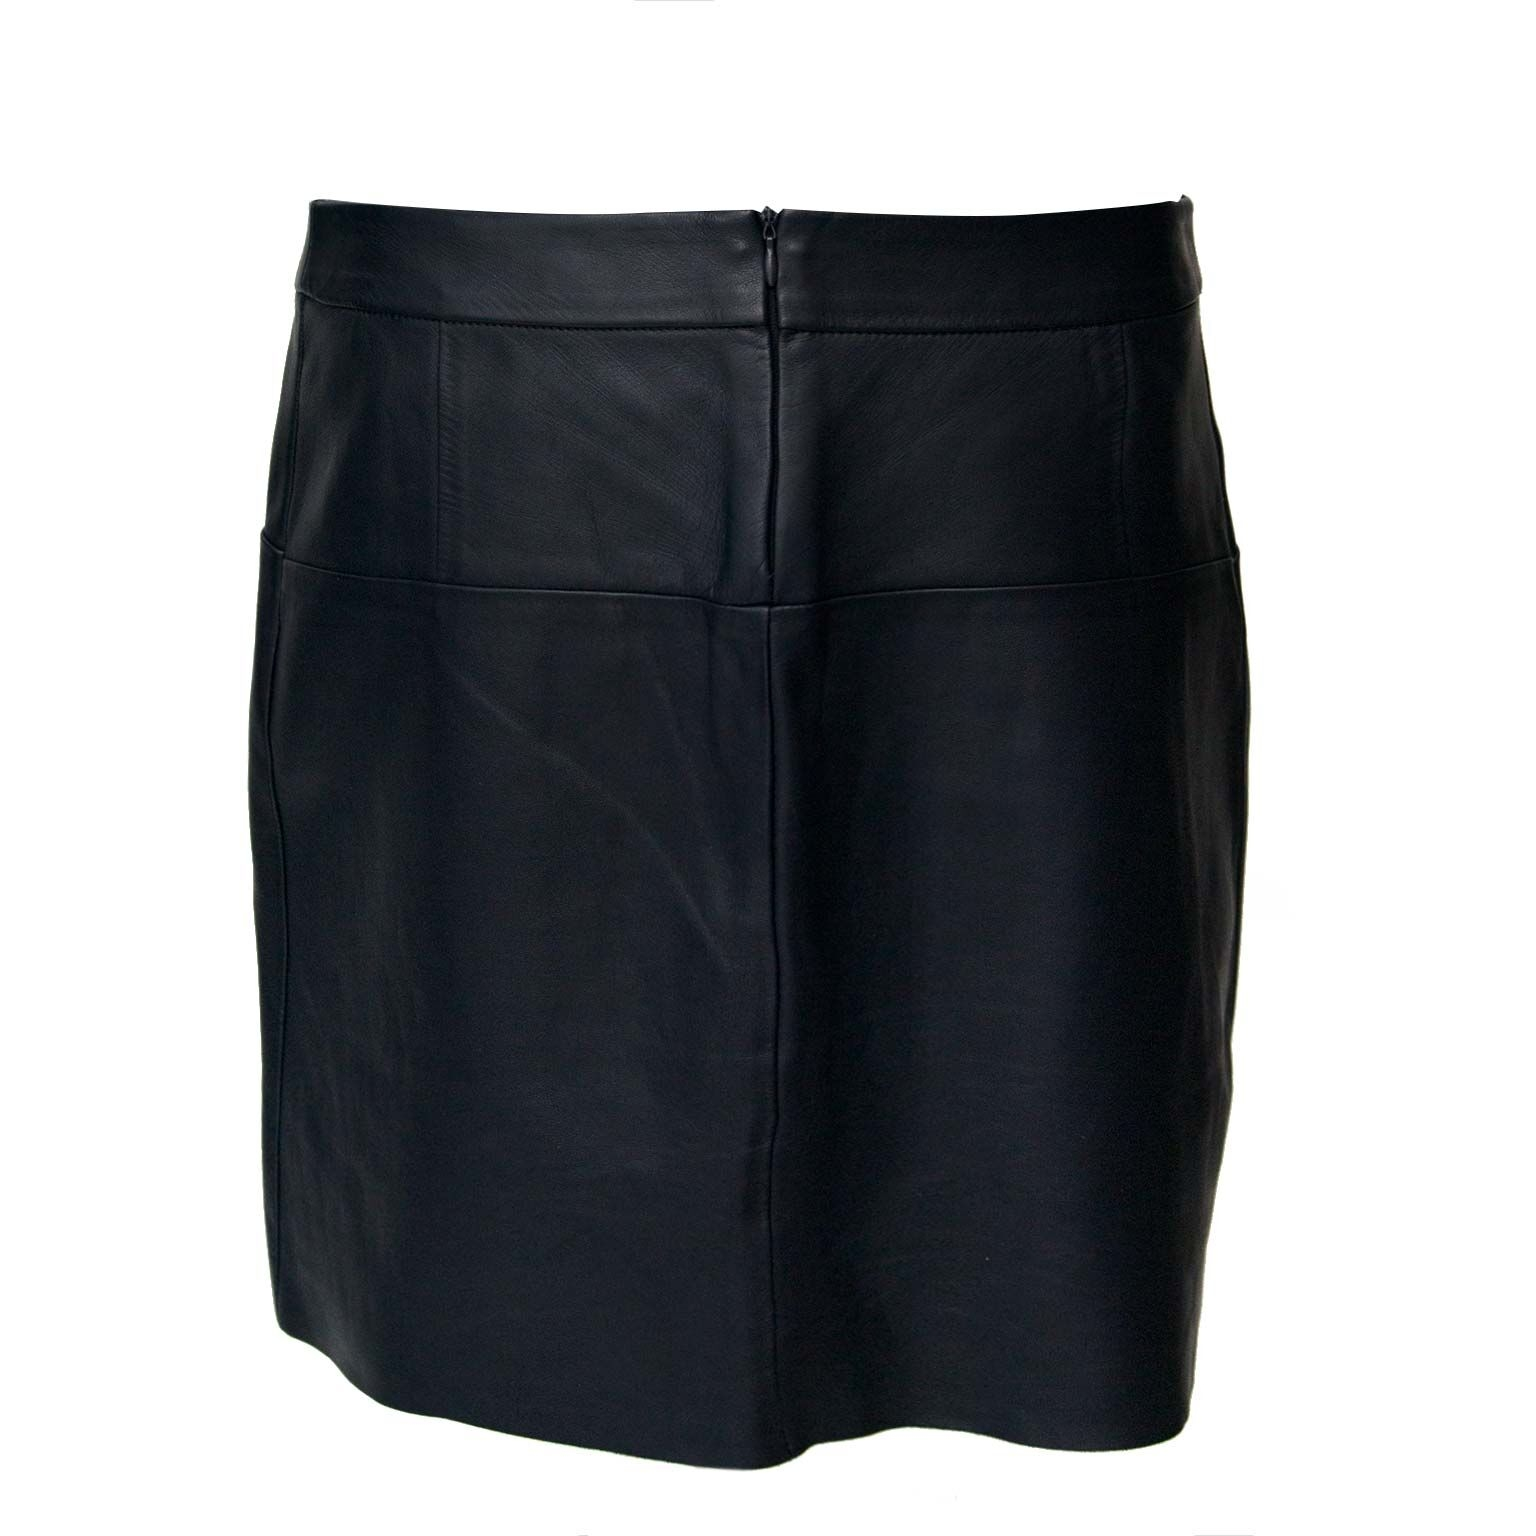 buy and sell celine leather mini skirts at labellov